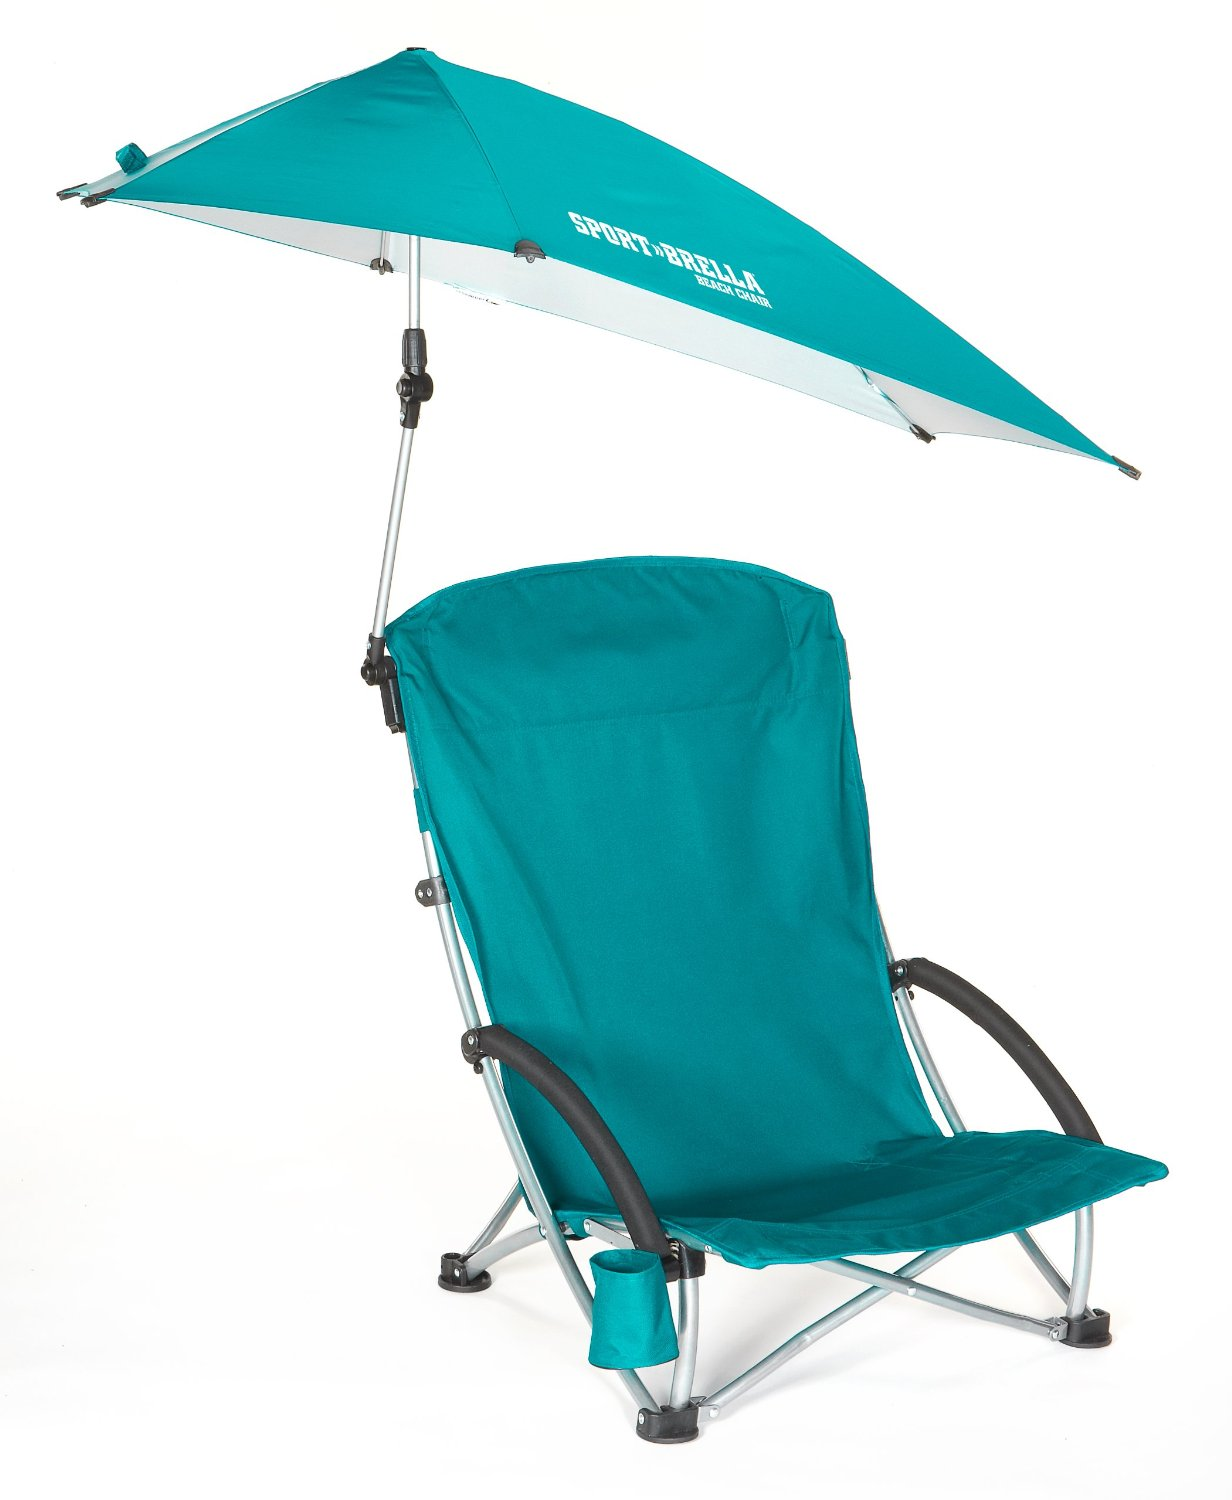 Nautica Beach Chairs And Umbrella Best Ergonomic Review May 2013